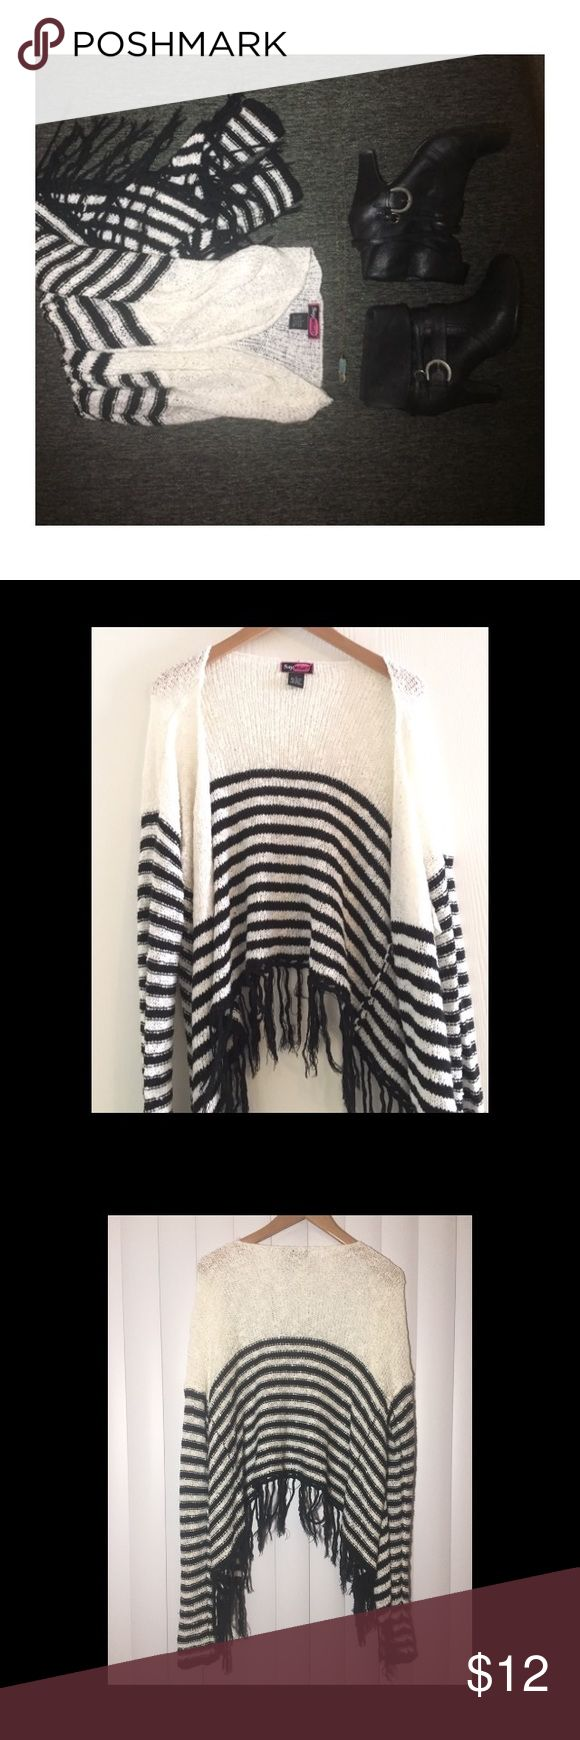 💕Super cute fringed cardigan!! Previously used ladies' cardigan, sweater material. Very lightweight. Pearl white & black in color. Size Lg. Slight get pilling of sweater material inside, not even noticeable but you can easily pull off the tiny fuzzies since there's so few. The fringe has a little bit of tangling as with most fringe that's been washed. Feel free to ask questions!! 💕💕This is SO adorable with a cami & long necklace. Add booties and your favorite hat 🎩 & you're ready to show…